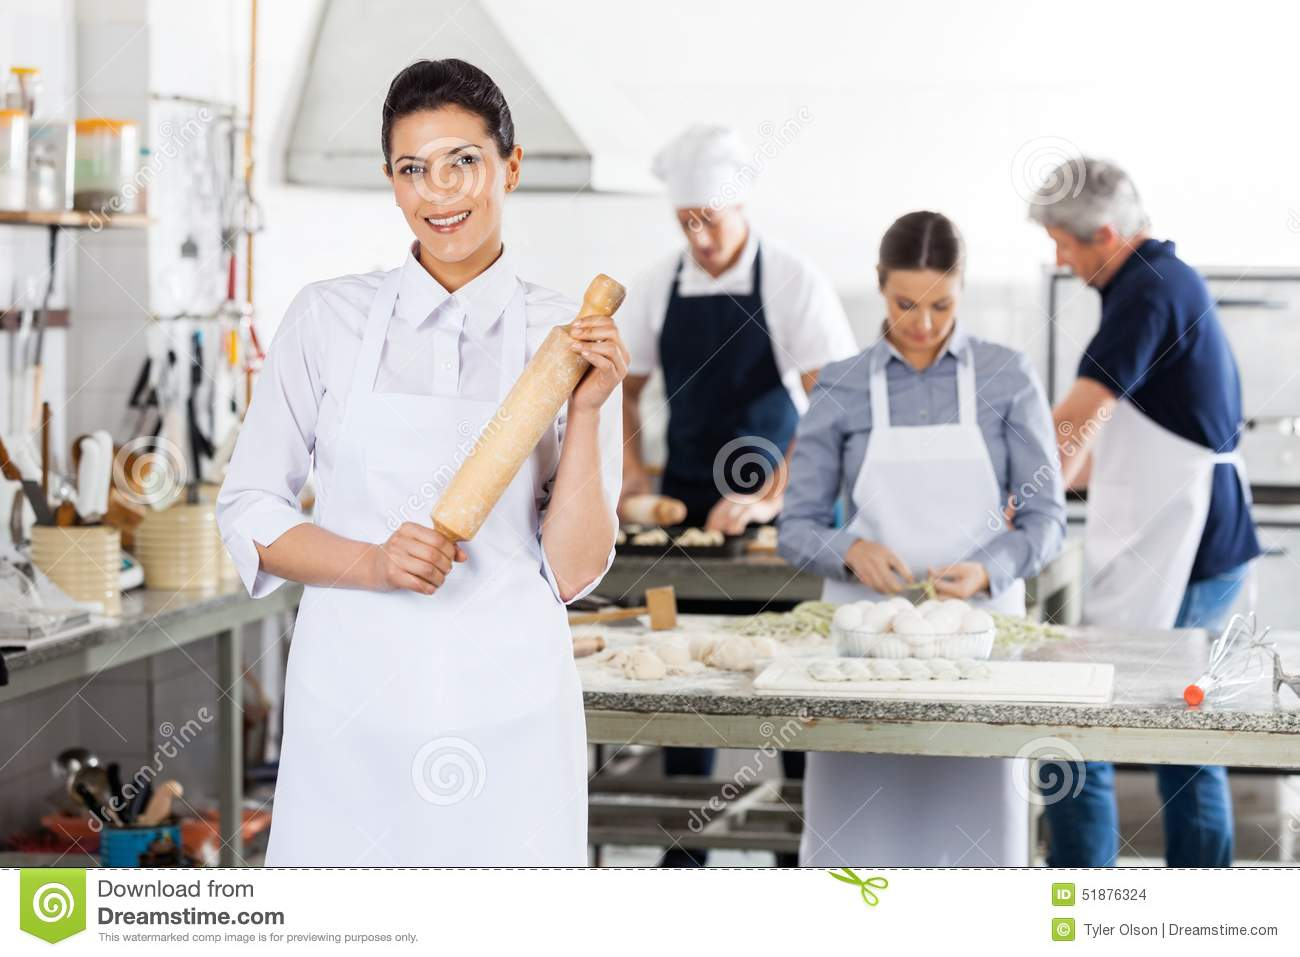 Female Chef Holding Rolling Pin While Colleagues